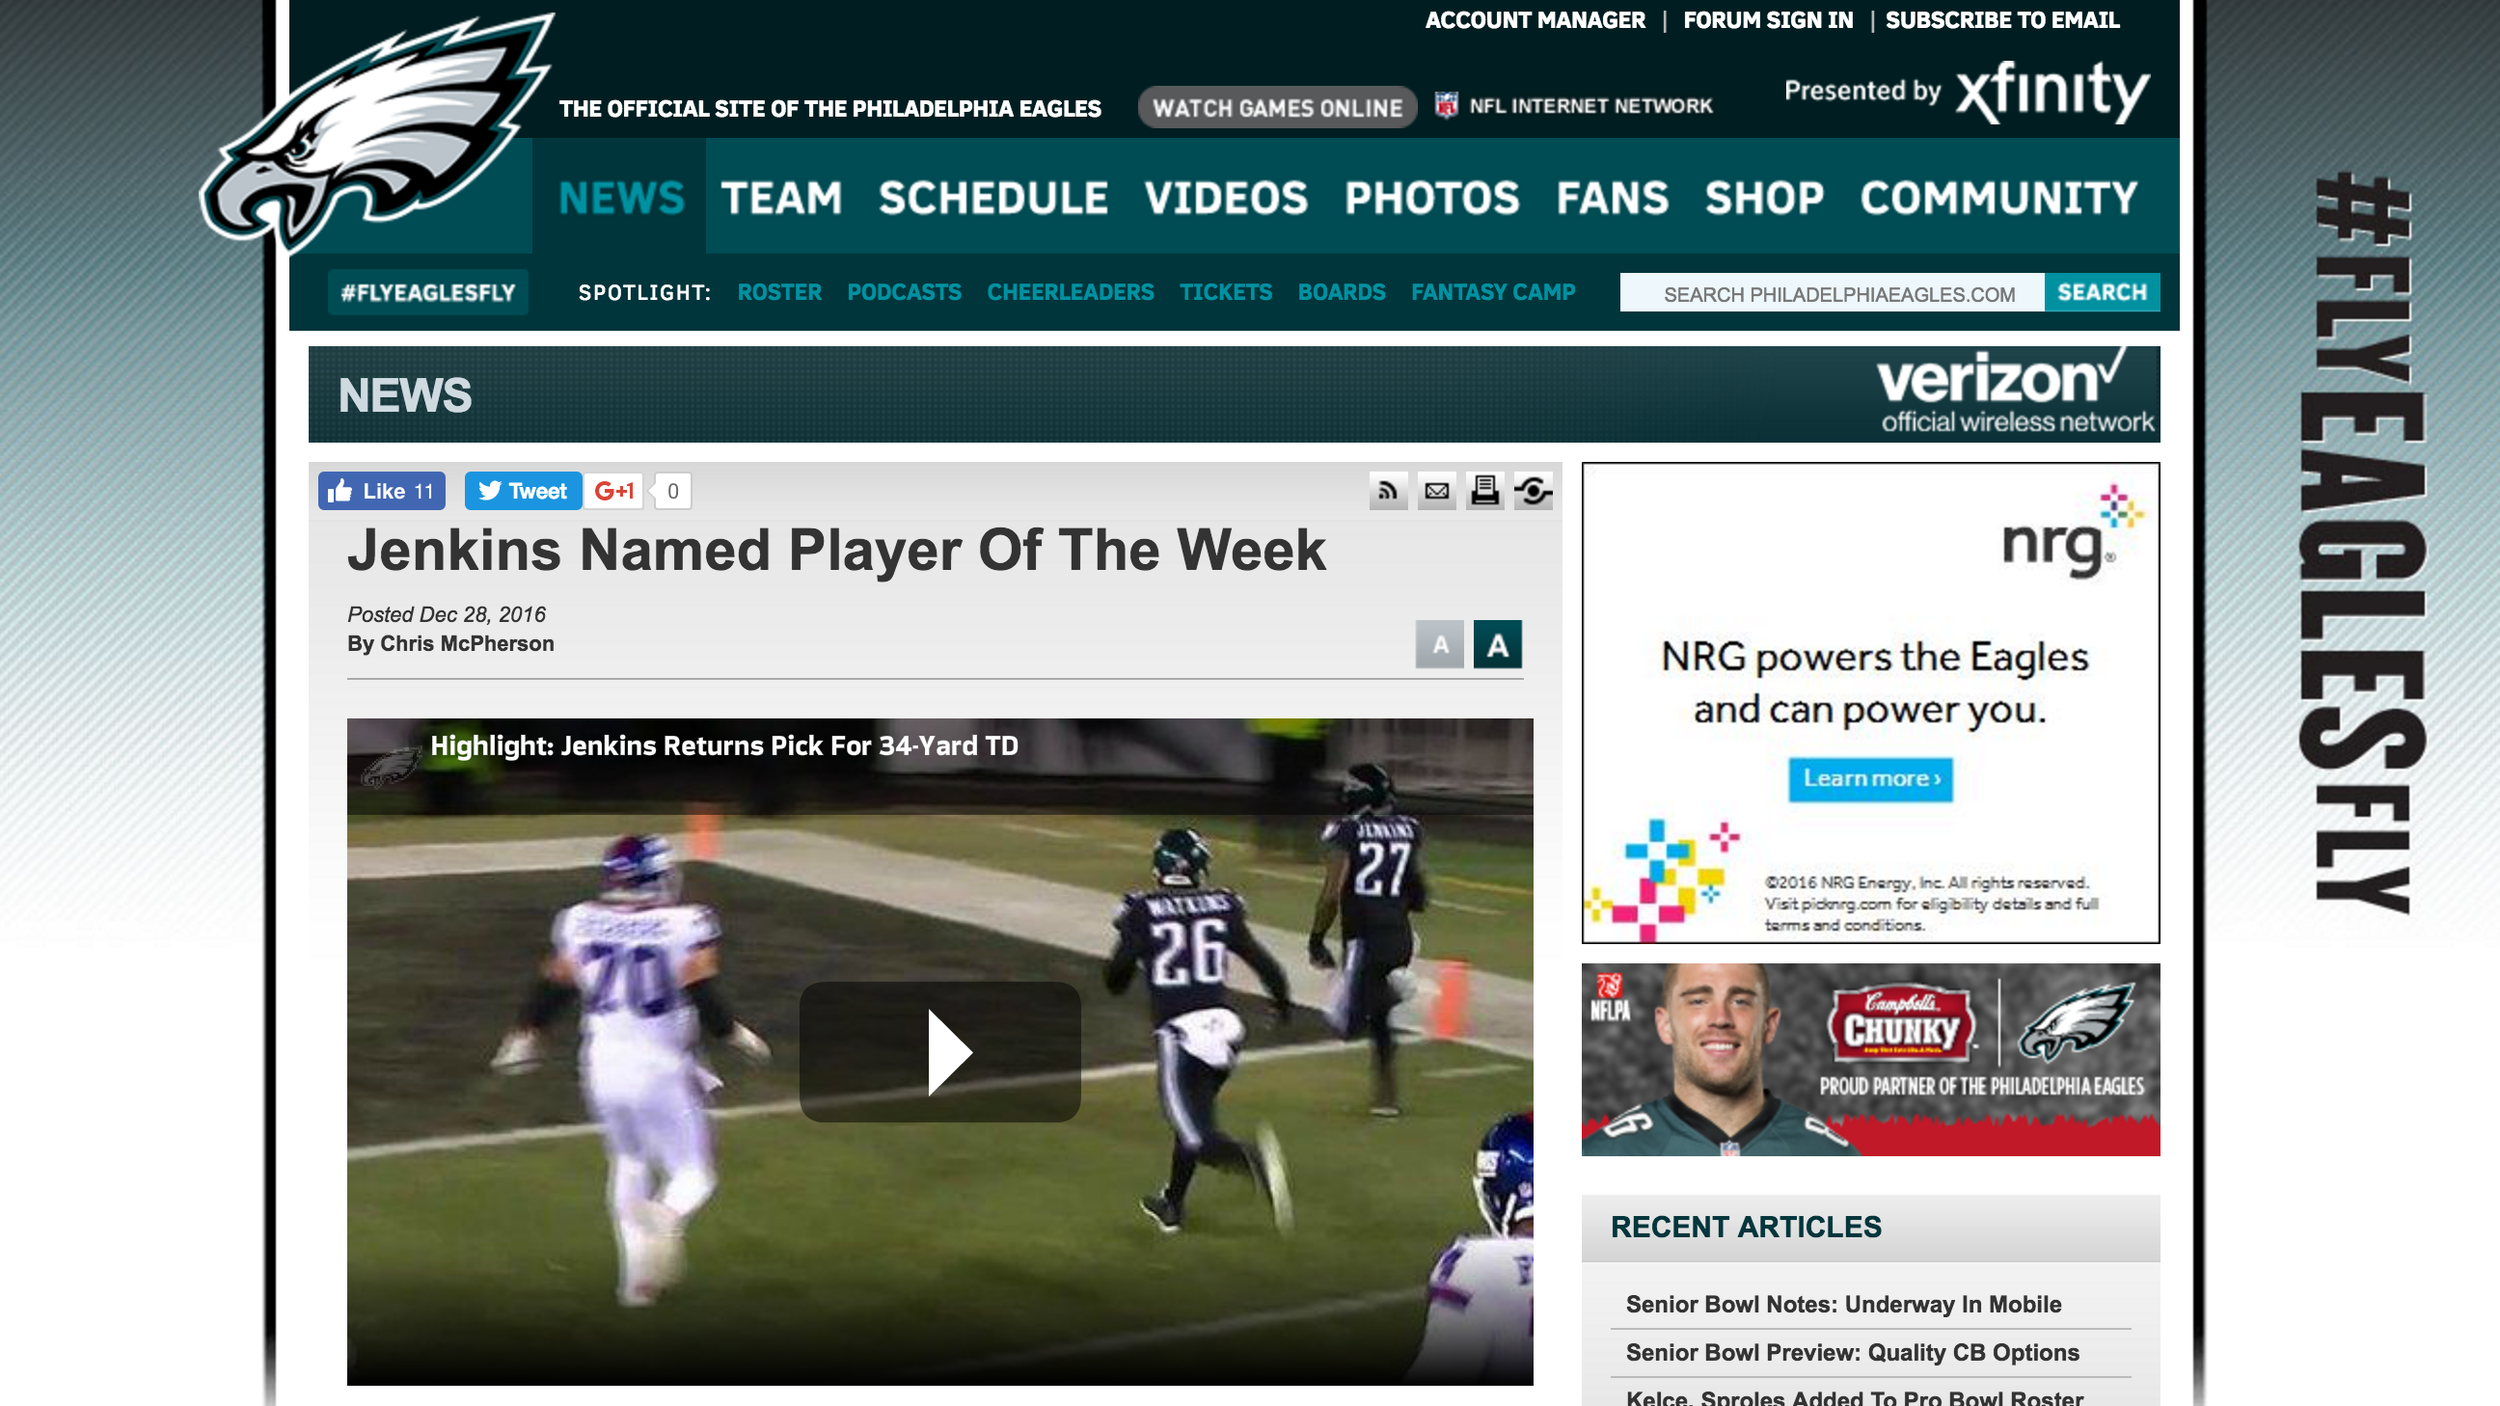 PLAYER OF THE WEEK - Safety Malcolm Jenkins was named the NFC's Defensive Player of the Week for his performance in last Thursday night's win over the New York Giants.